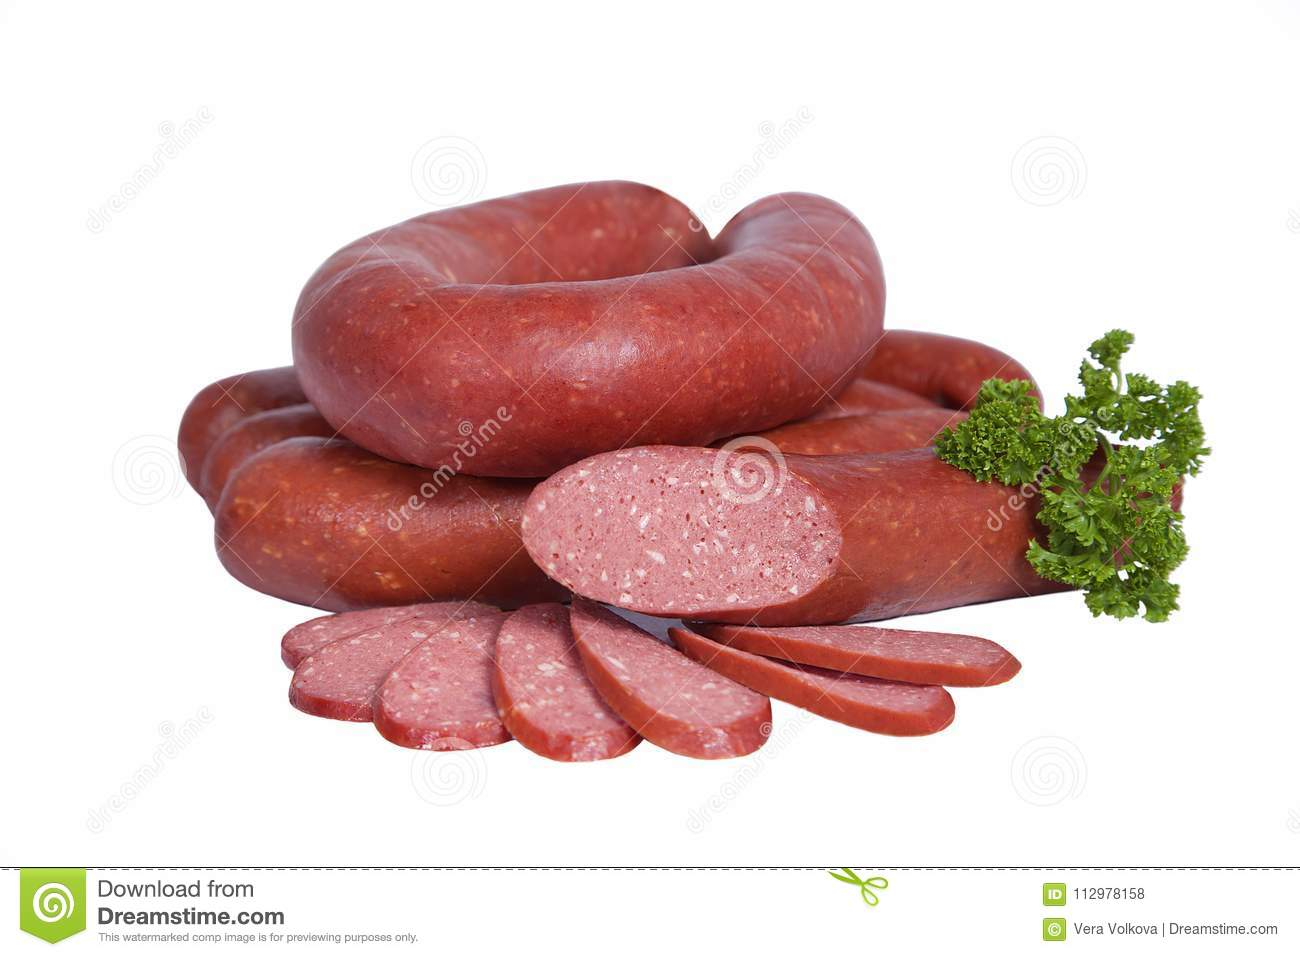 Boiled and smoked sausage in natural shell. Isolated on white background